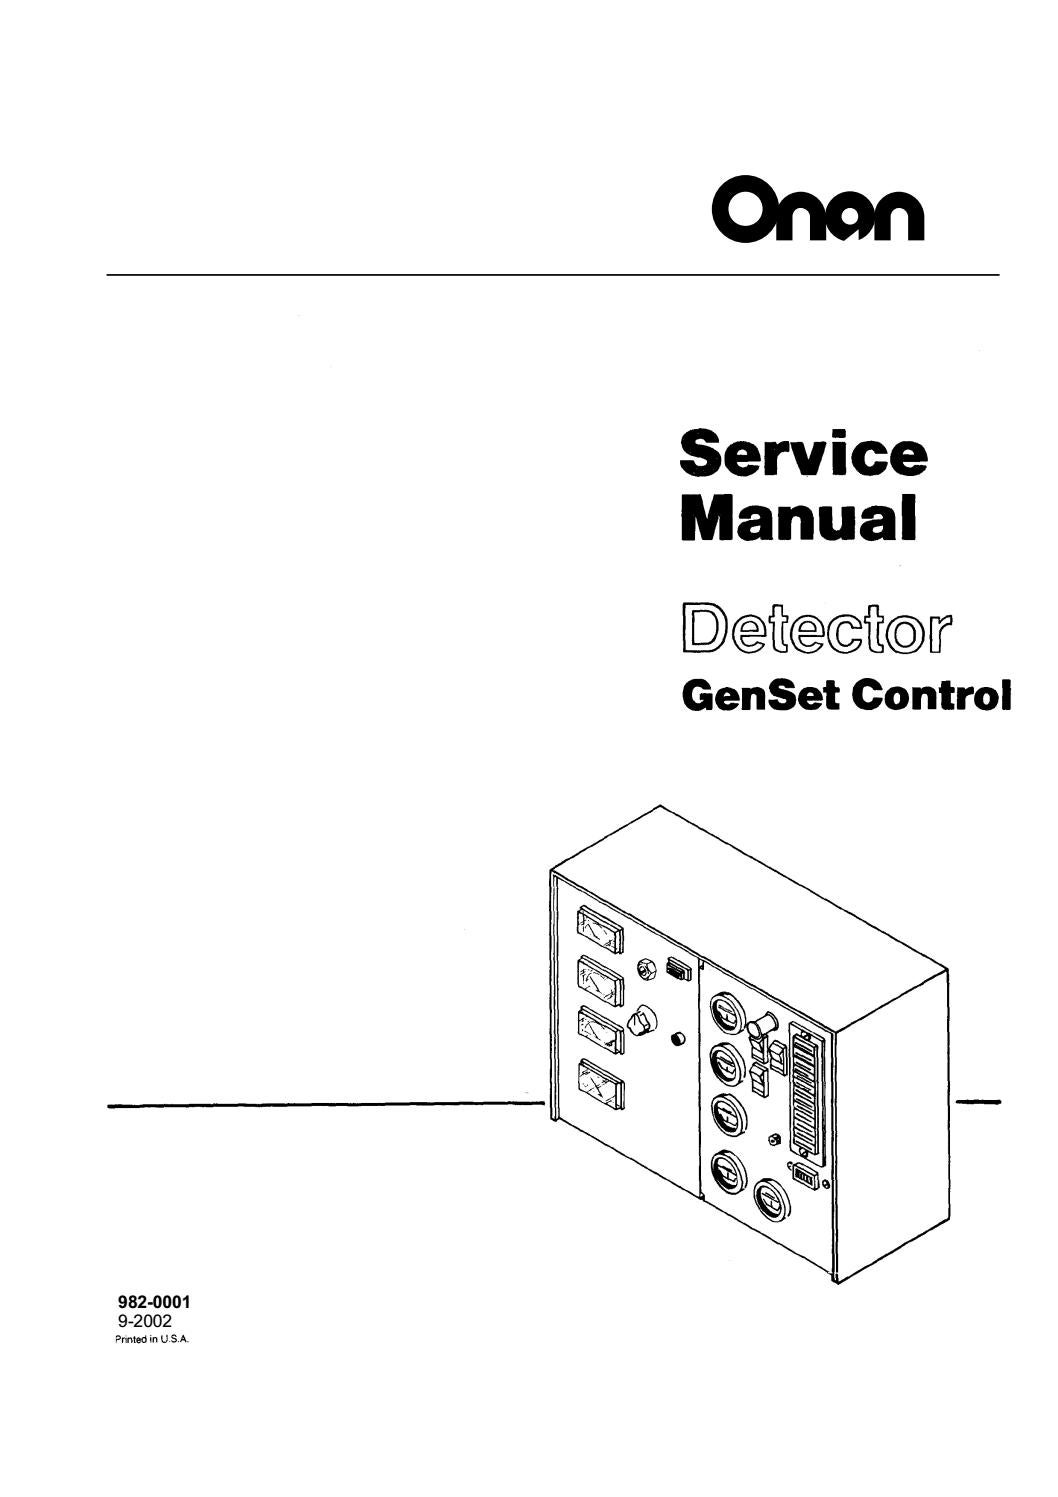 Cummins Onan Detector Genset Control Service Repair Manual